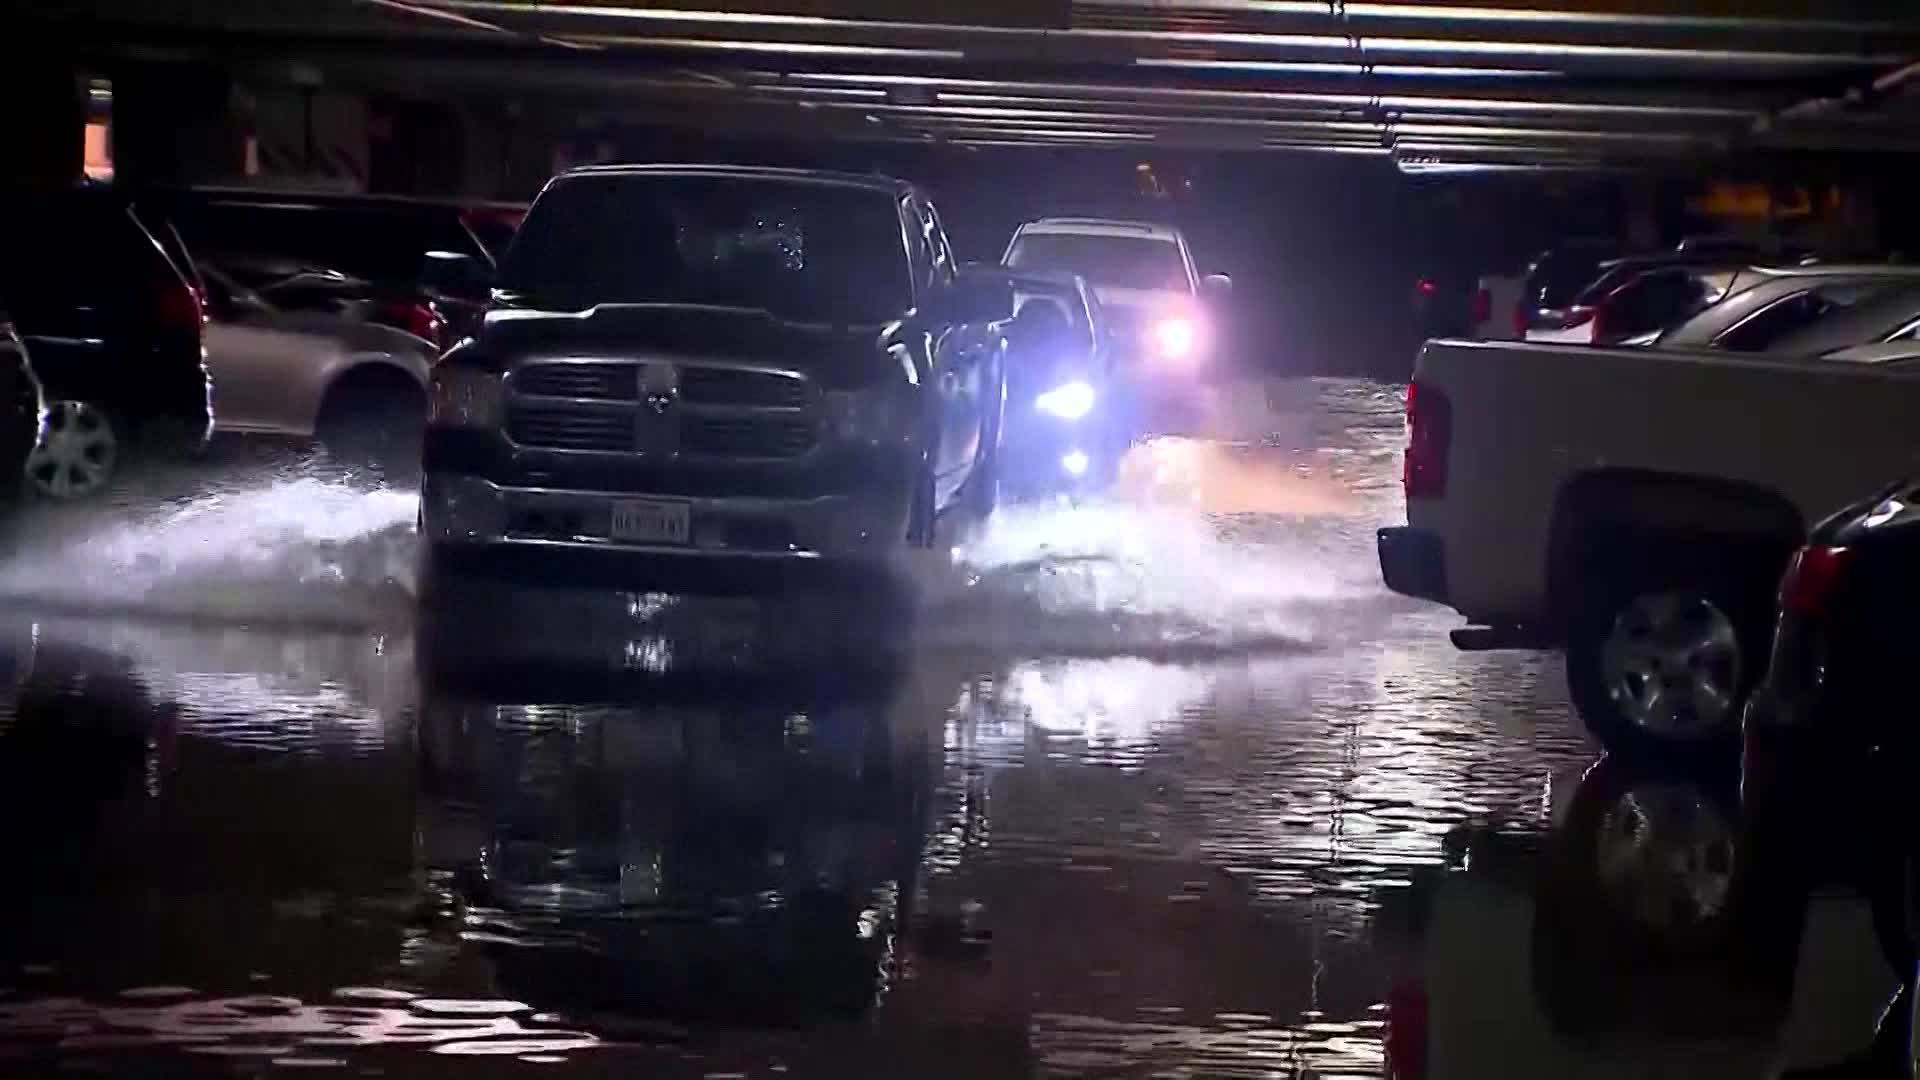 Flooding at Dallas Love Field Car Garage